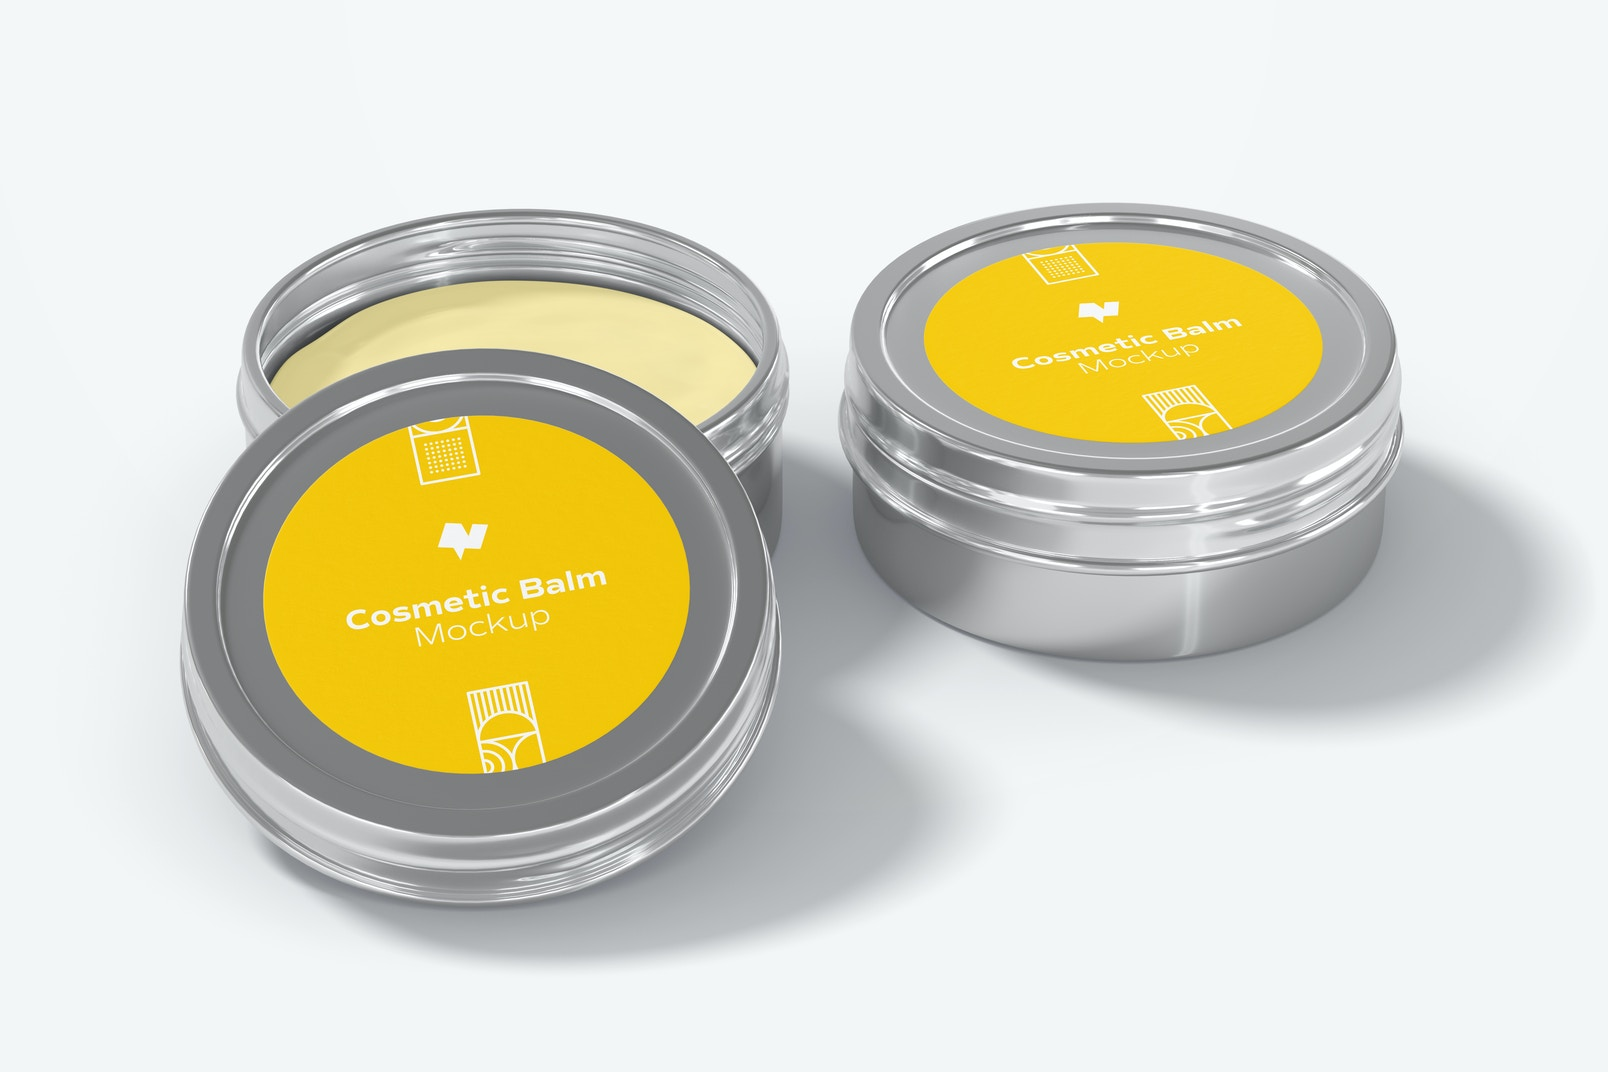 Metallic Cosmetic Balm Packaging Mockup, Open and Closed